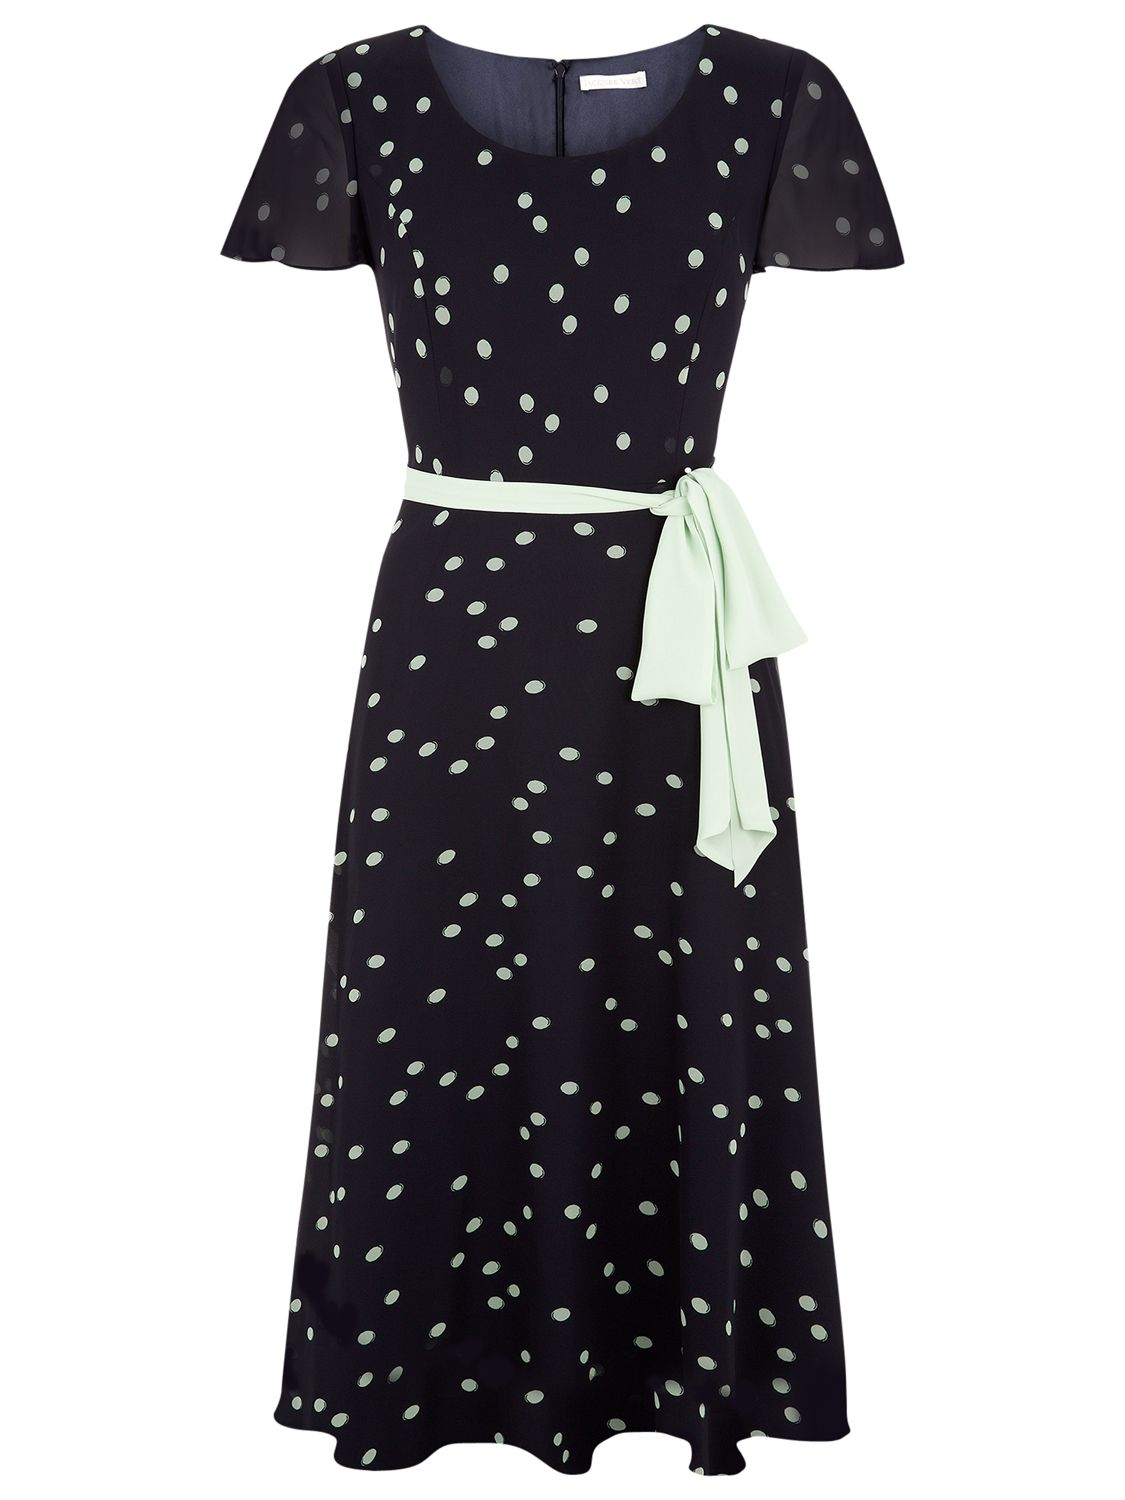 jacques vert printed fit and flare dress navy, jacques, vert, printed, fit, flare, dress, navy, jacques vert, 8|22|24|18|12|16|20|10|14, women, plus size, womens dresses, 1867318